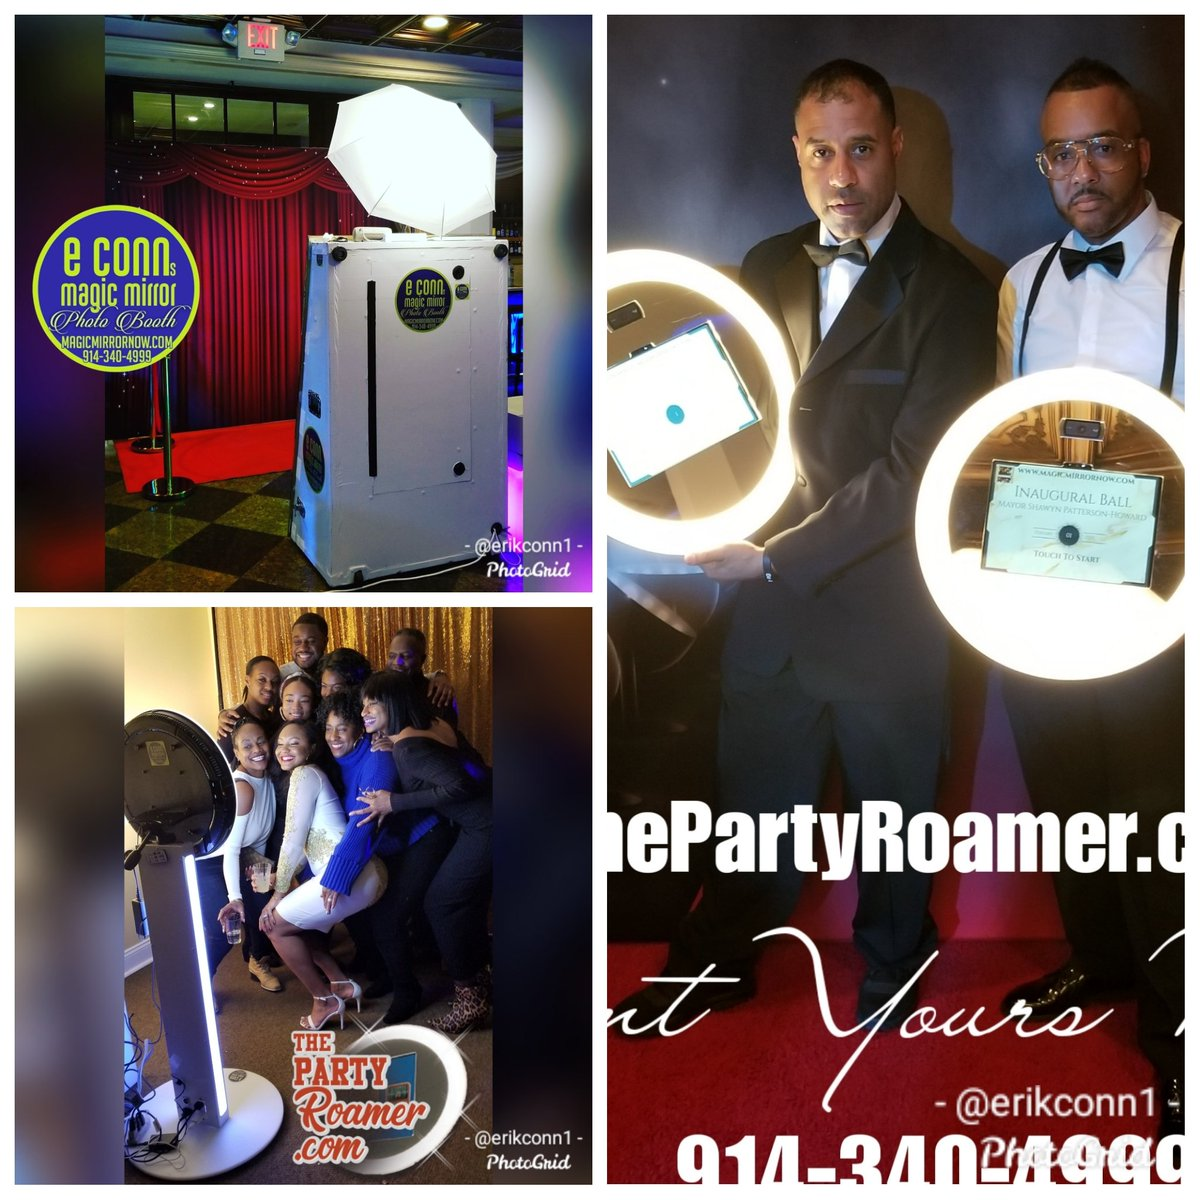 You Choose! The Magic Mirror Photo Booth and http://ThePartyRoamer.com  #1 In The Tri-State Area! http://www.magicmirrornow.com   #photoboothrental #rentphotobooth #blackexcellence #thepartyroamer #partyroamernyc #magicmirror #mirrormebooth #photobooth #birthdays #weddings #corporateeventspic.twitter.com/O3ebkboq0s